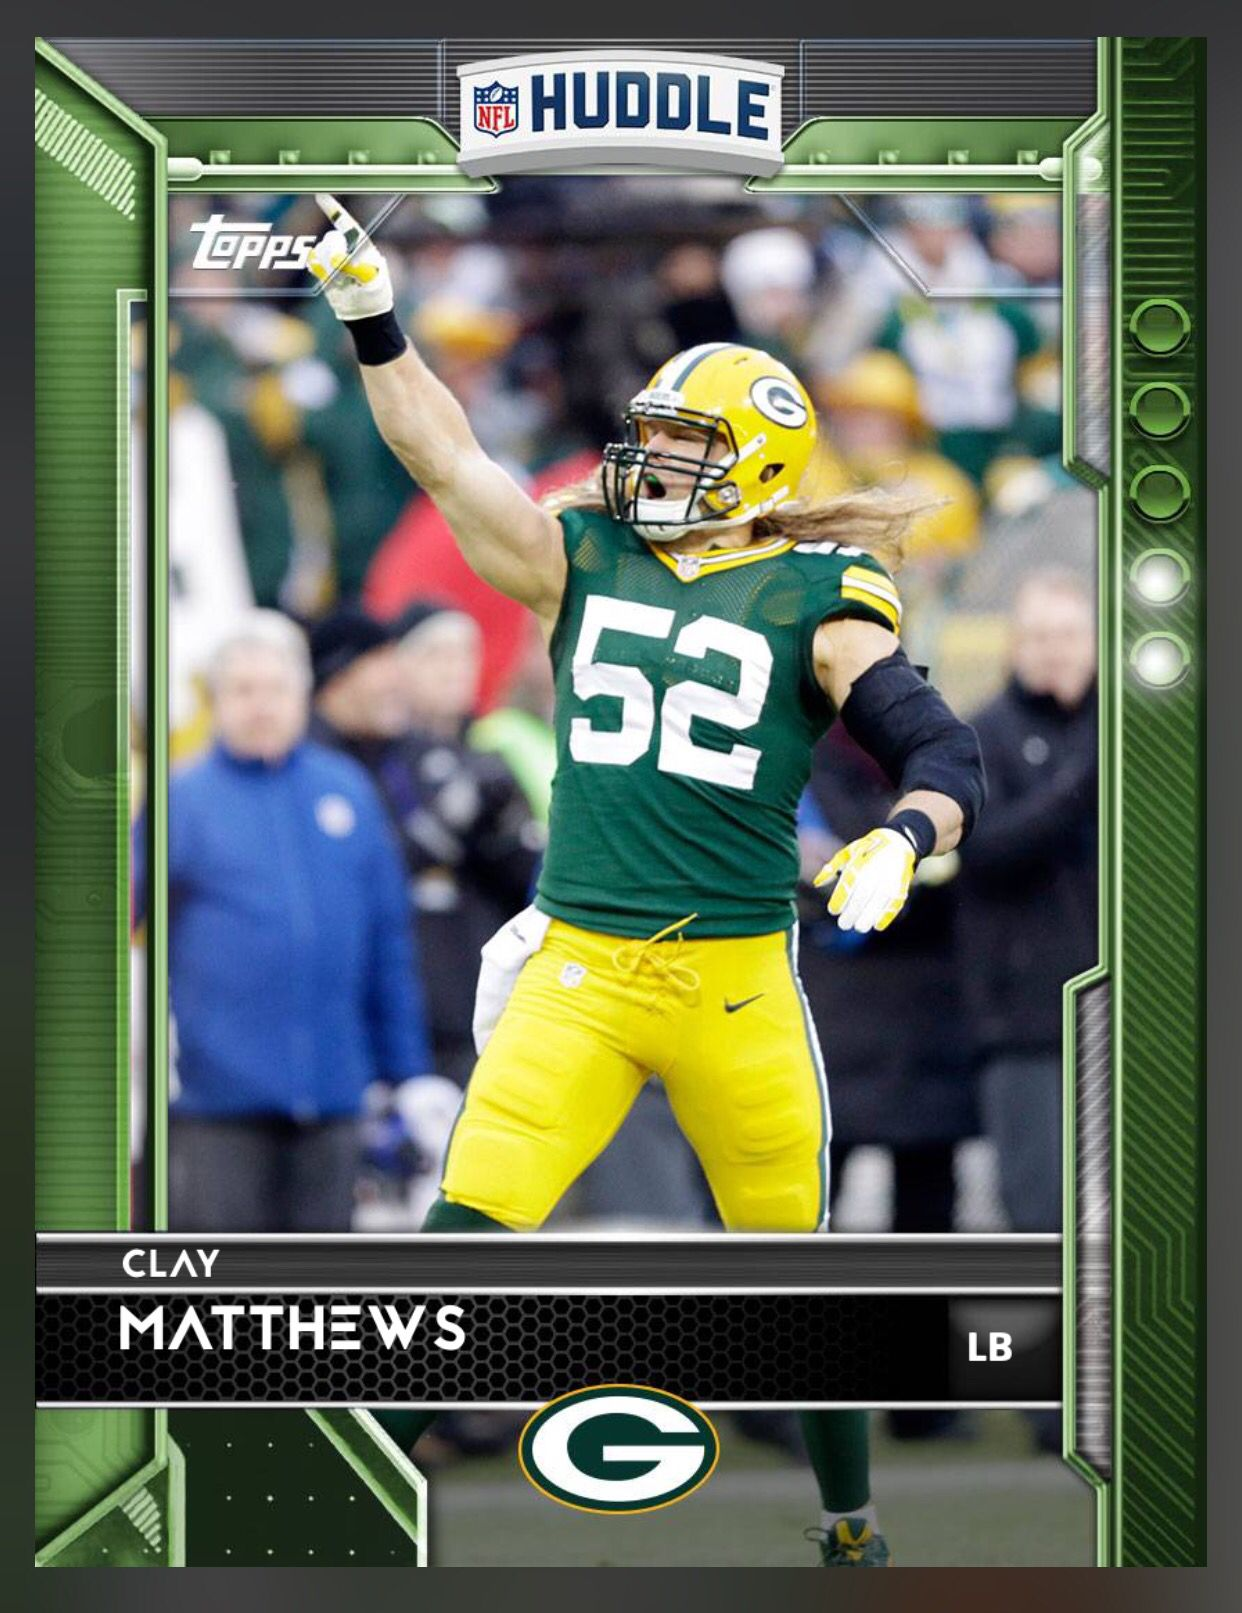 Clay Matthews Green Bay Packers Green Parallel Card 2016 Topps Huddle Football Cards Clay Matthews Sports Cards